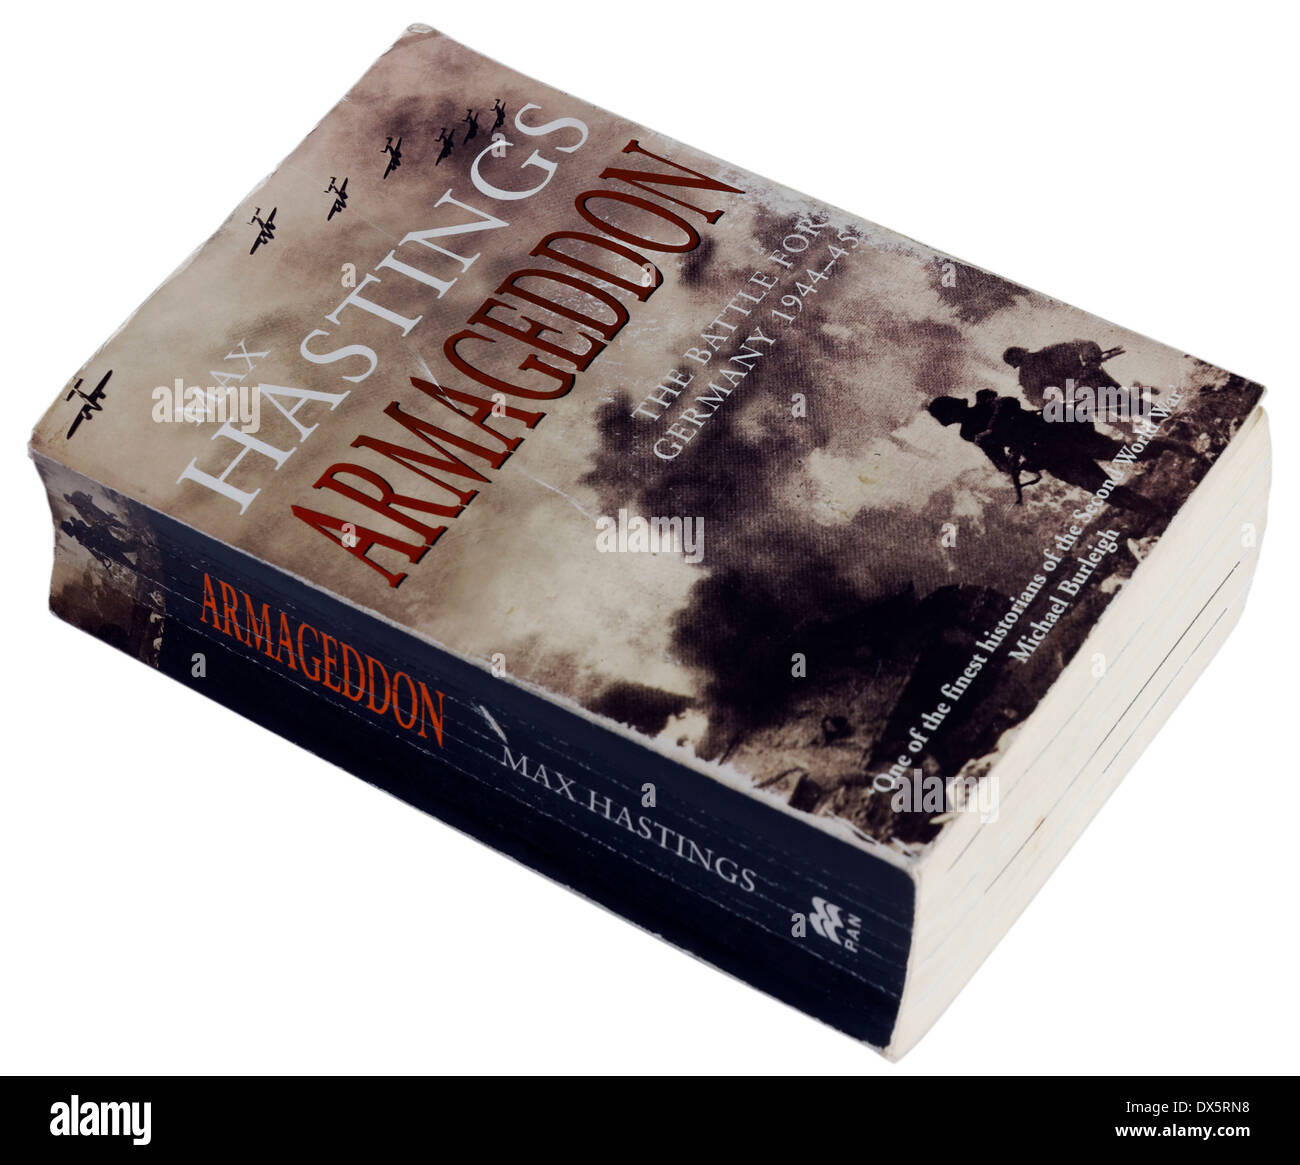 Armageddon by Max Hastings - Stock Image